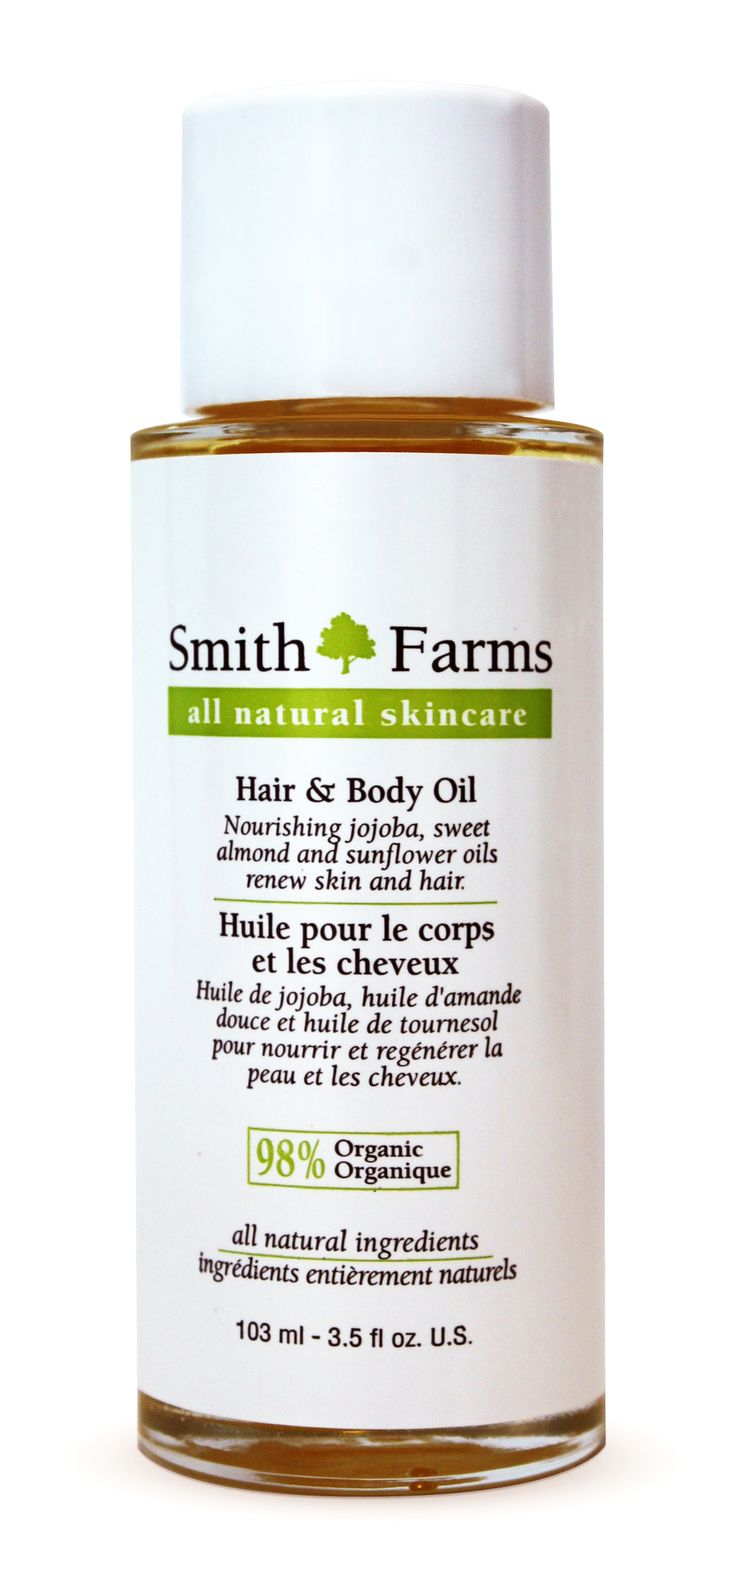 One third each jojoba, sweet almond and sunflower oil this light and fast absorbing oil is as good for your hair as it is for your skin. Enriched with vitamin E and honeysuckle essential oil, this multipurpose oil is as decadent as it is hardworking.